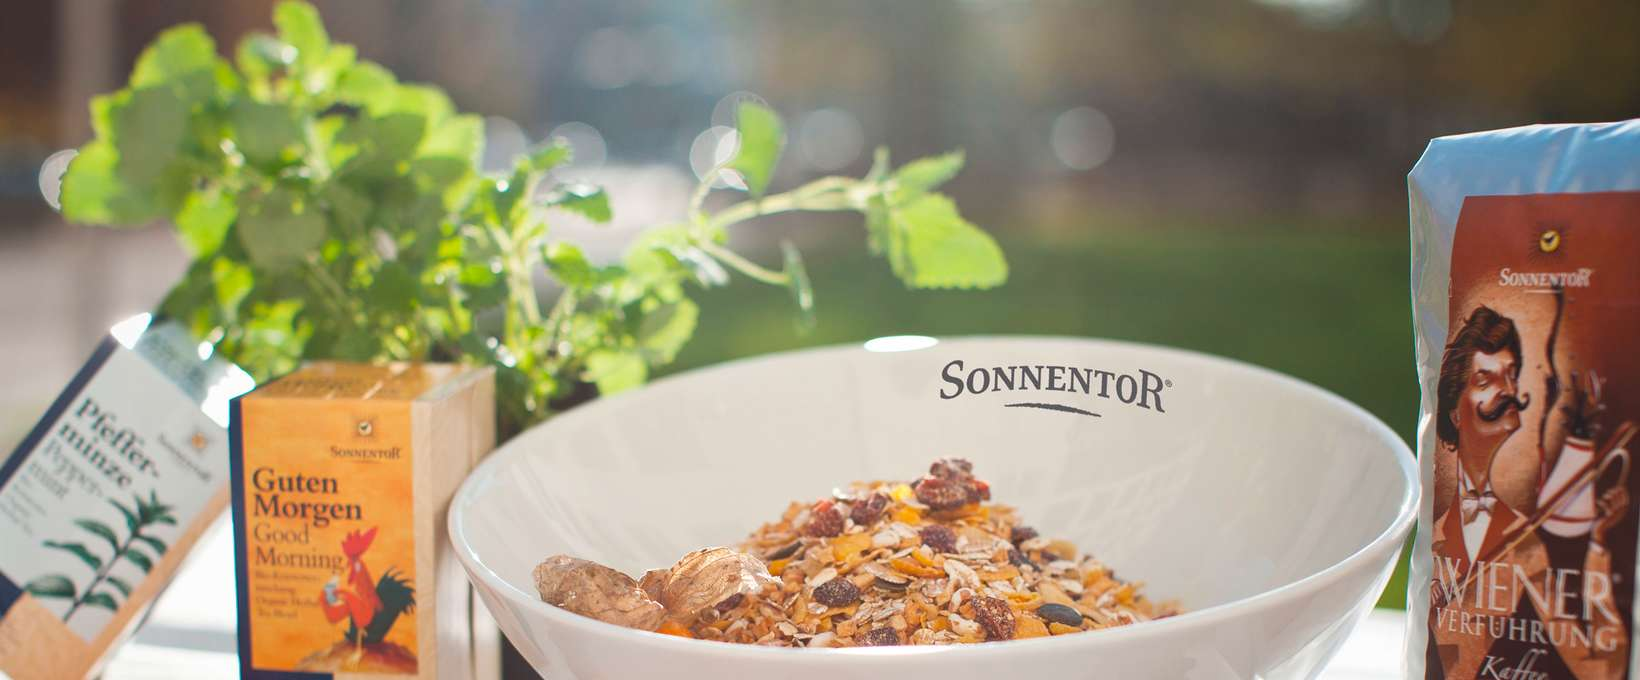 Sonnentor cereal in bowl